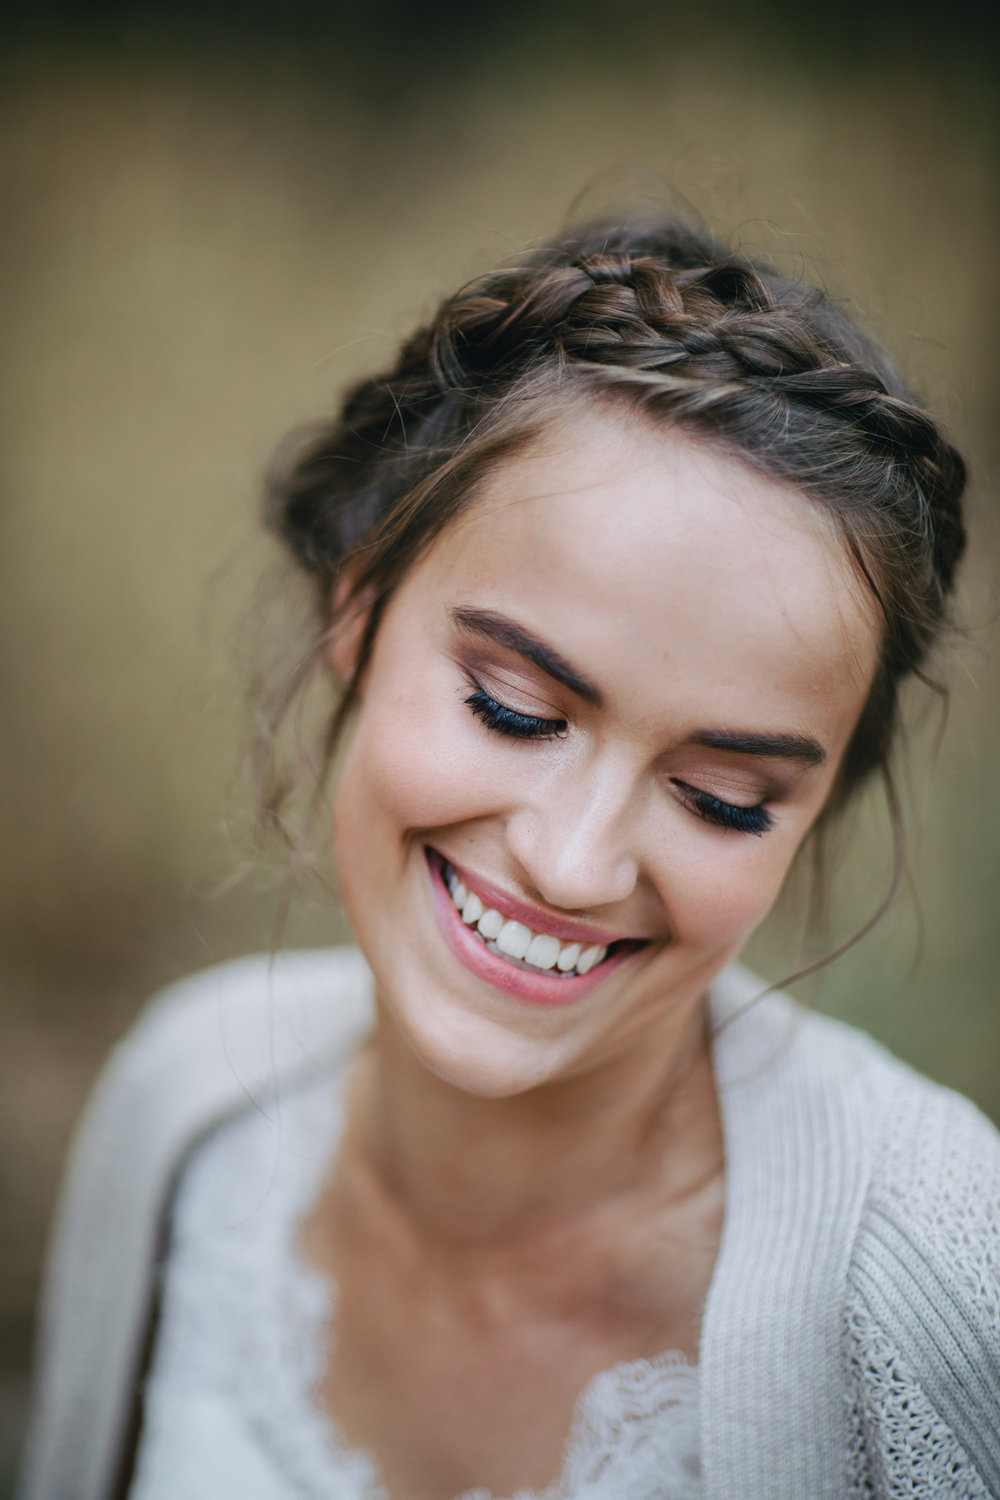 Wedding Day Services - Bridal Makeup TrialA 2 hour consultation and makeup application.$130Bridal Makeup1.5 hour Bridal Makeup application including natural looking false lashes if desired.$130Bridesmaids / Other Makeup1 hour makeup application including natural looking false lashes if desired.$110Flowergirls / Junior BridesmaidsPrice will vary depending on age and makeup look required. A quick fluff of blush on a soft brush and a dab of lipgloss is usually perfect for the little ones and is free :)Please note: travel costs may apply depending on location. There is a minimum callout fee of $250 for a weekend wedding.